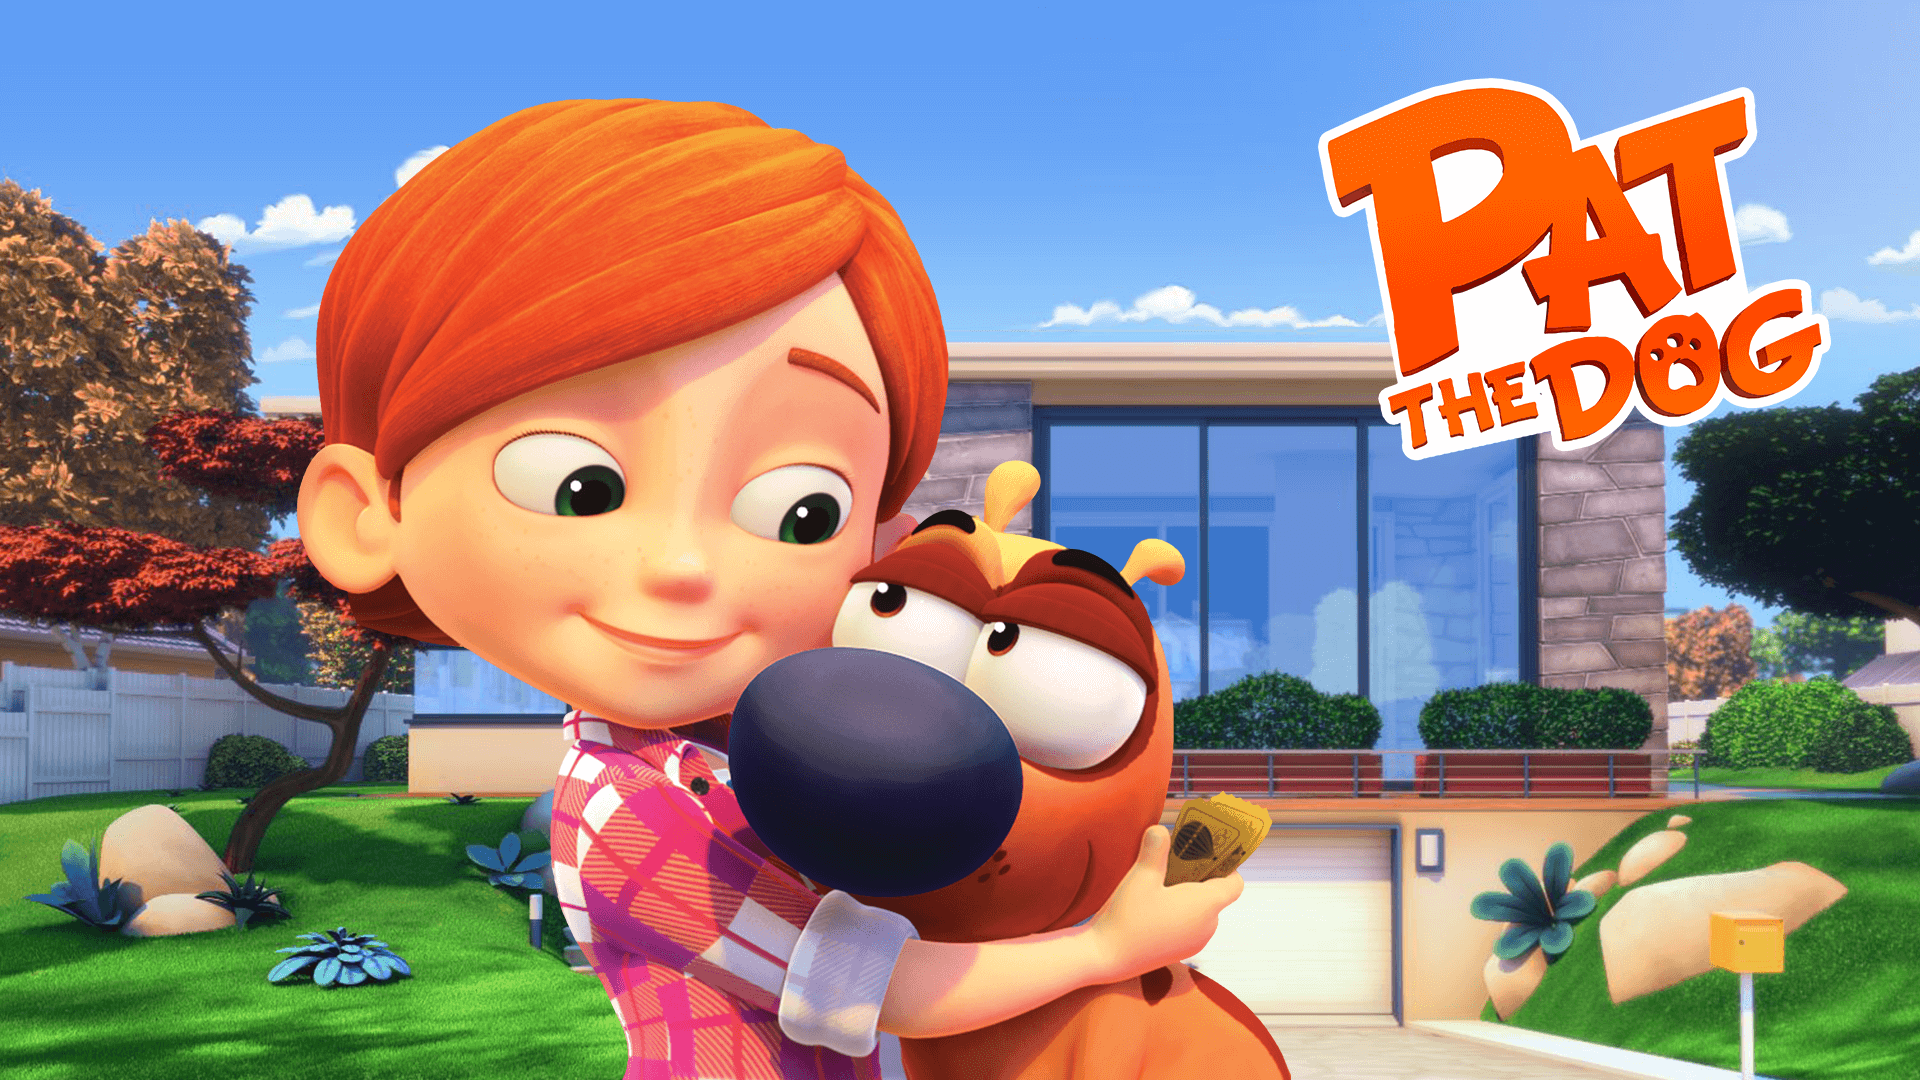 Pat the dog – Season 1